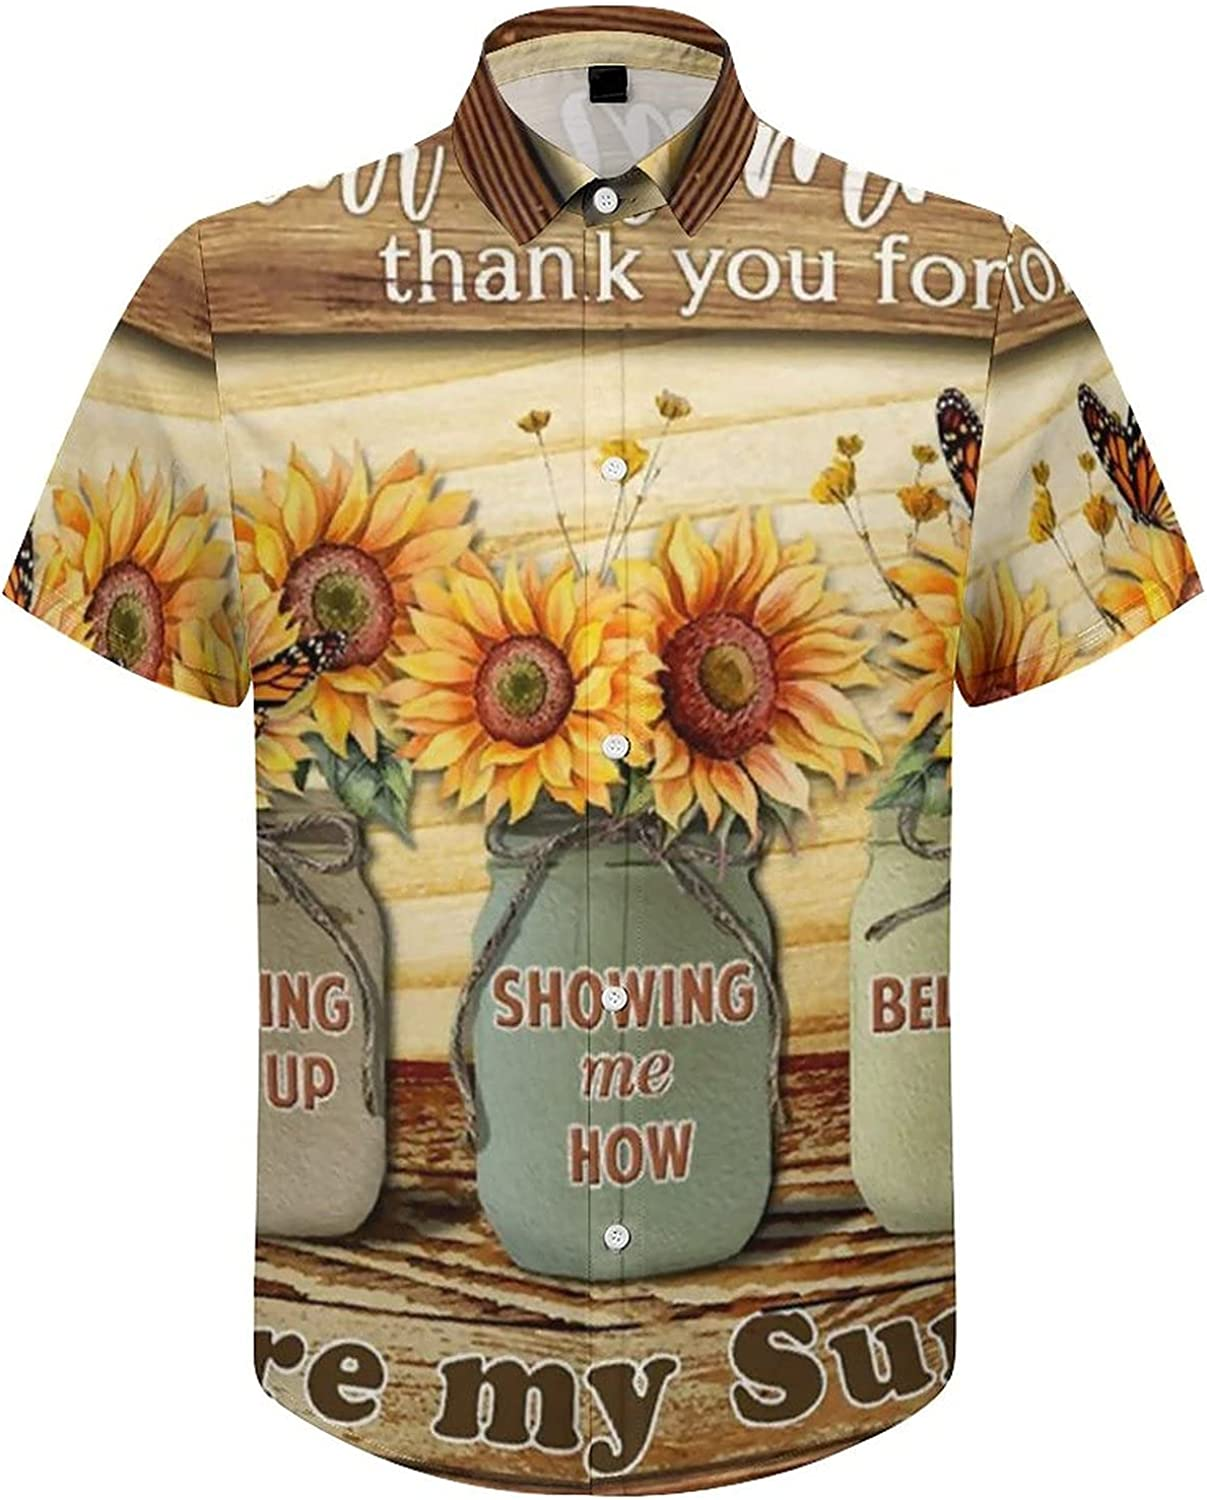 Men's Regular-Fit Short-Sleeve Printed Party Holiday Shirt Thank You Mommy Sunflower Butterfly